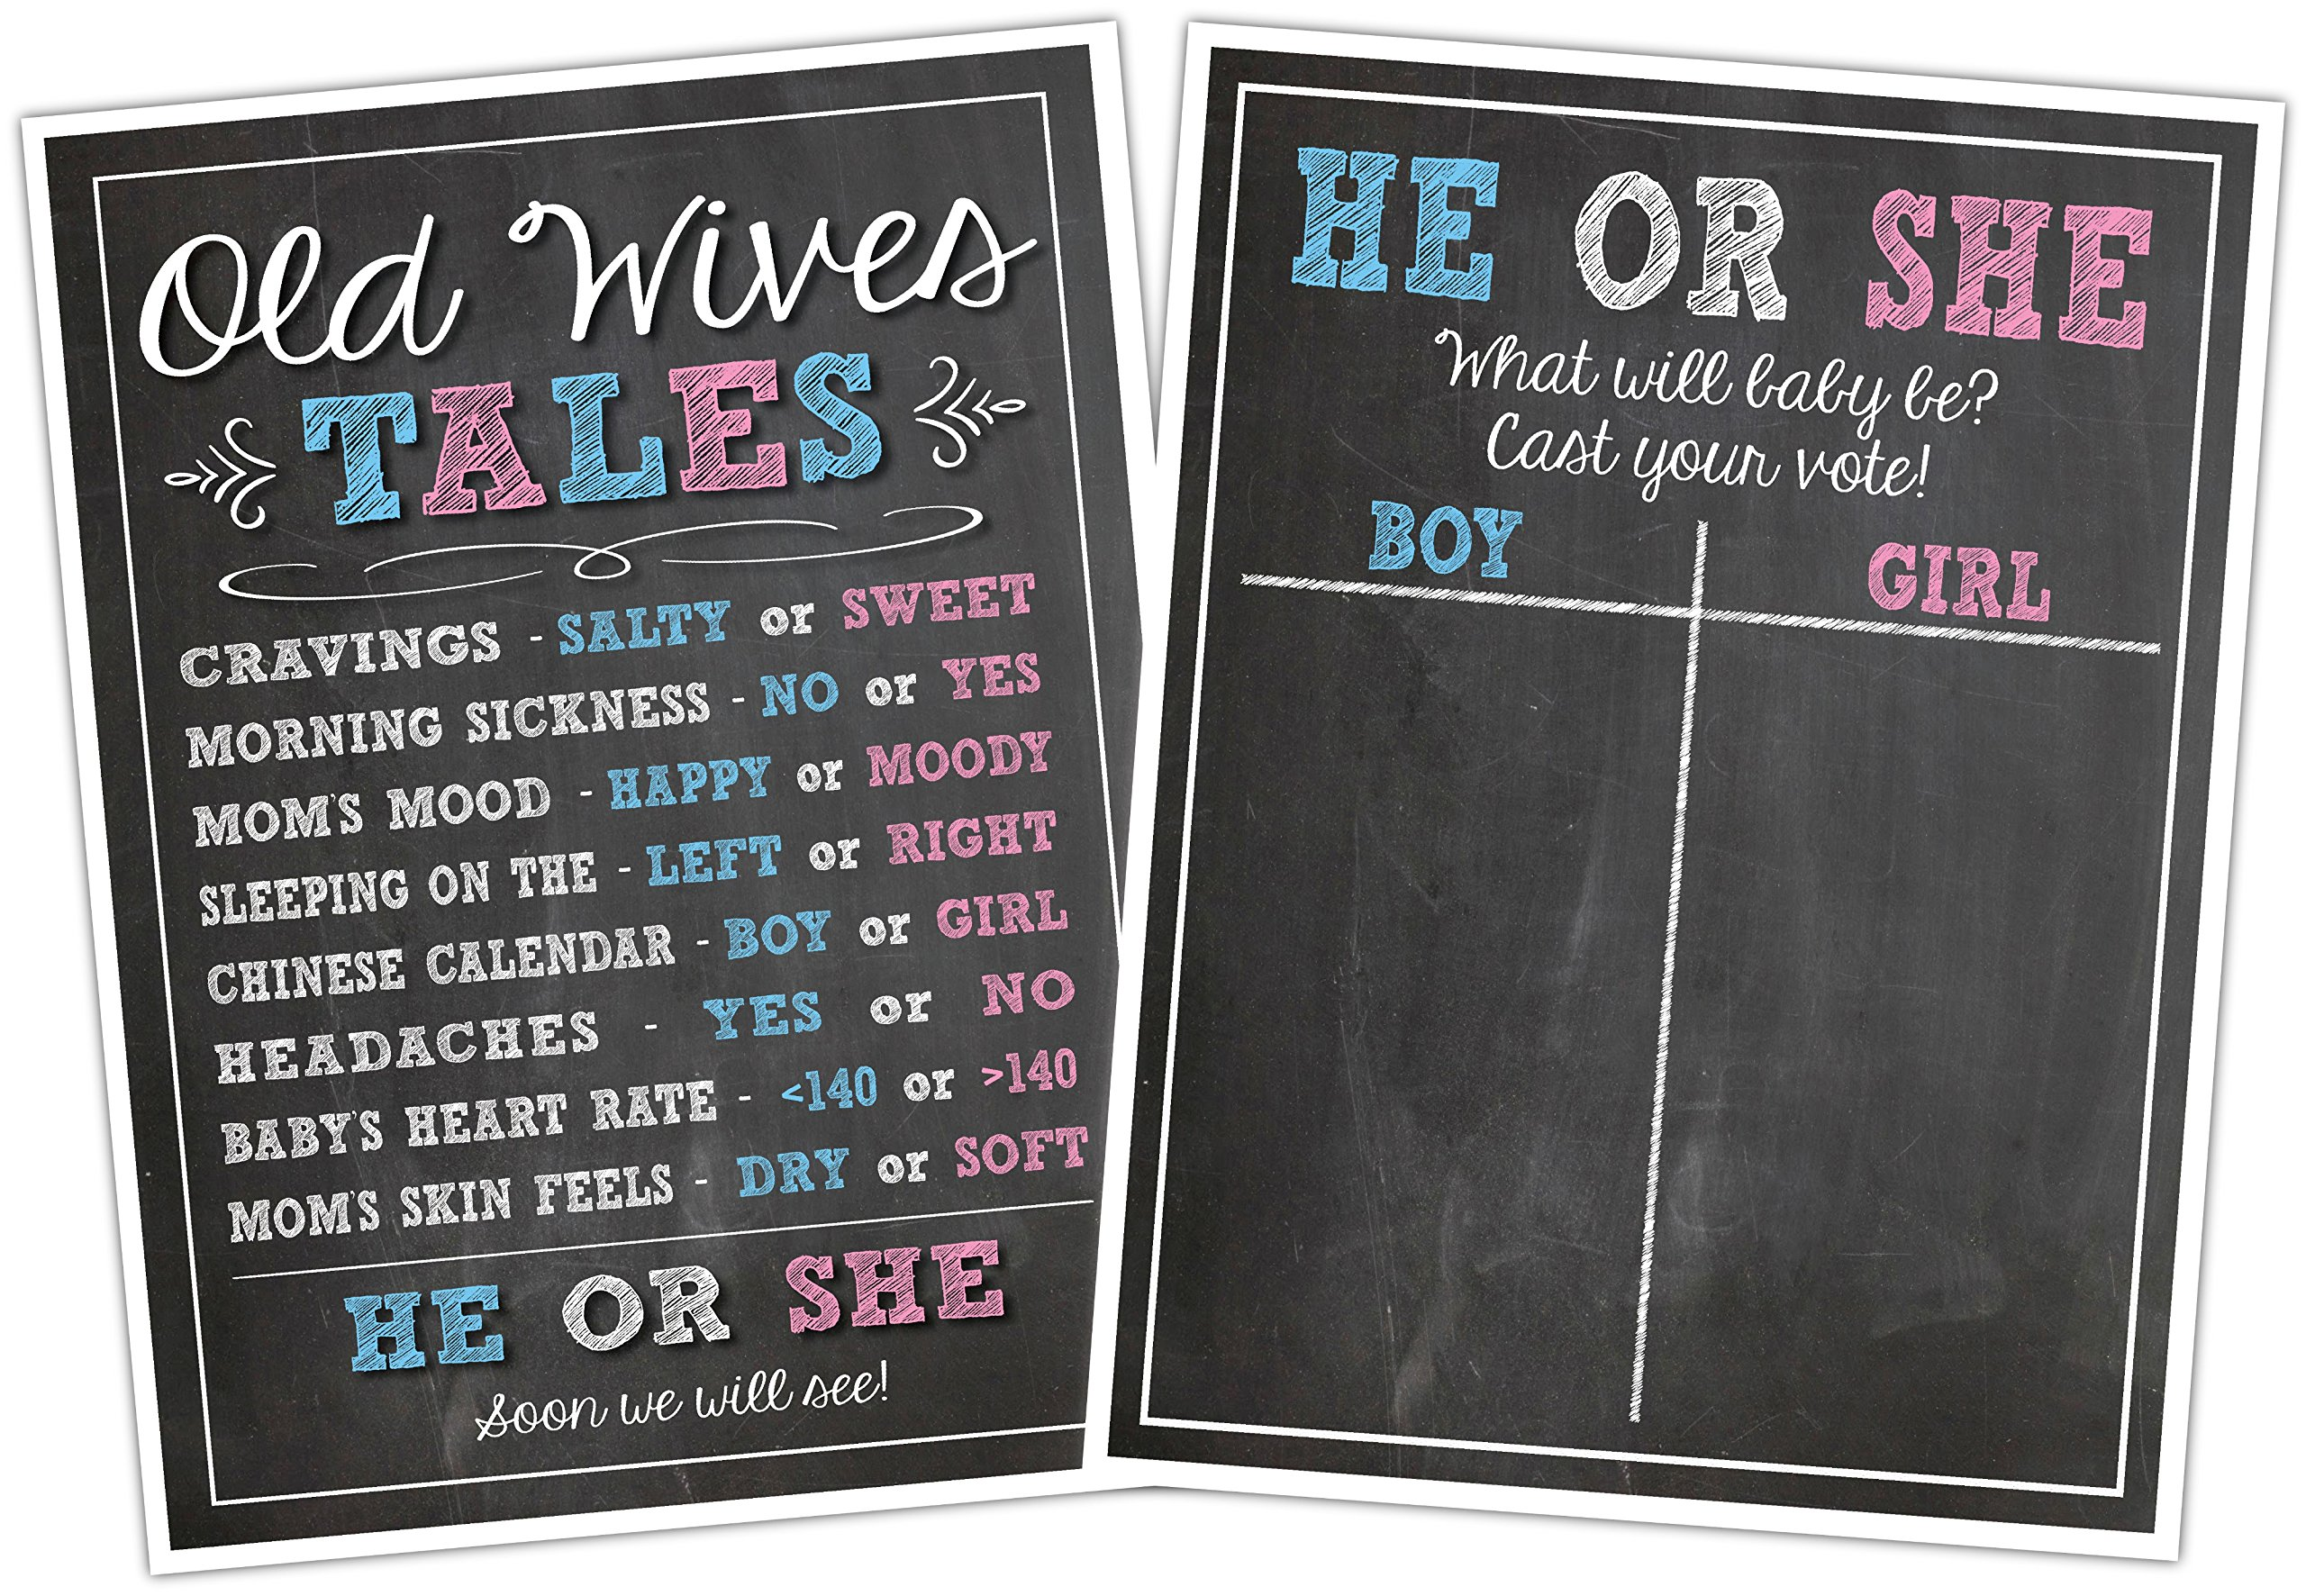 Katie Doodle GR003 Premium Baby Old Wives Tales Cast Your Vote Poster Set, Pregnancy Gender Reveal Party Decoration for Boys and Girls, 12x18 inches, Black by Katie Doodle